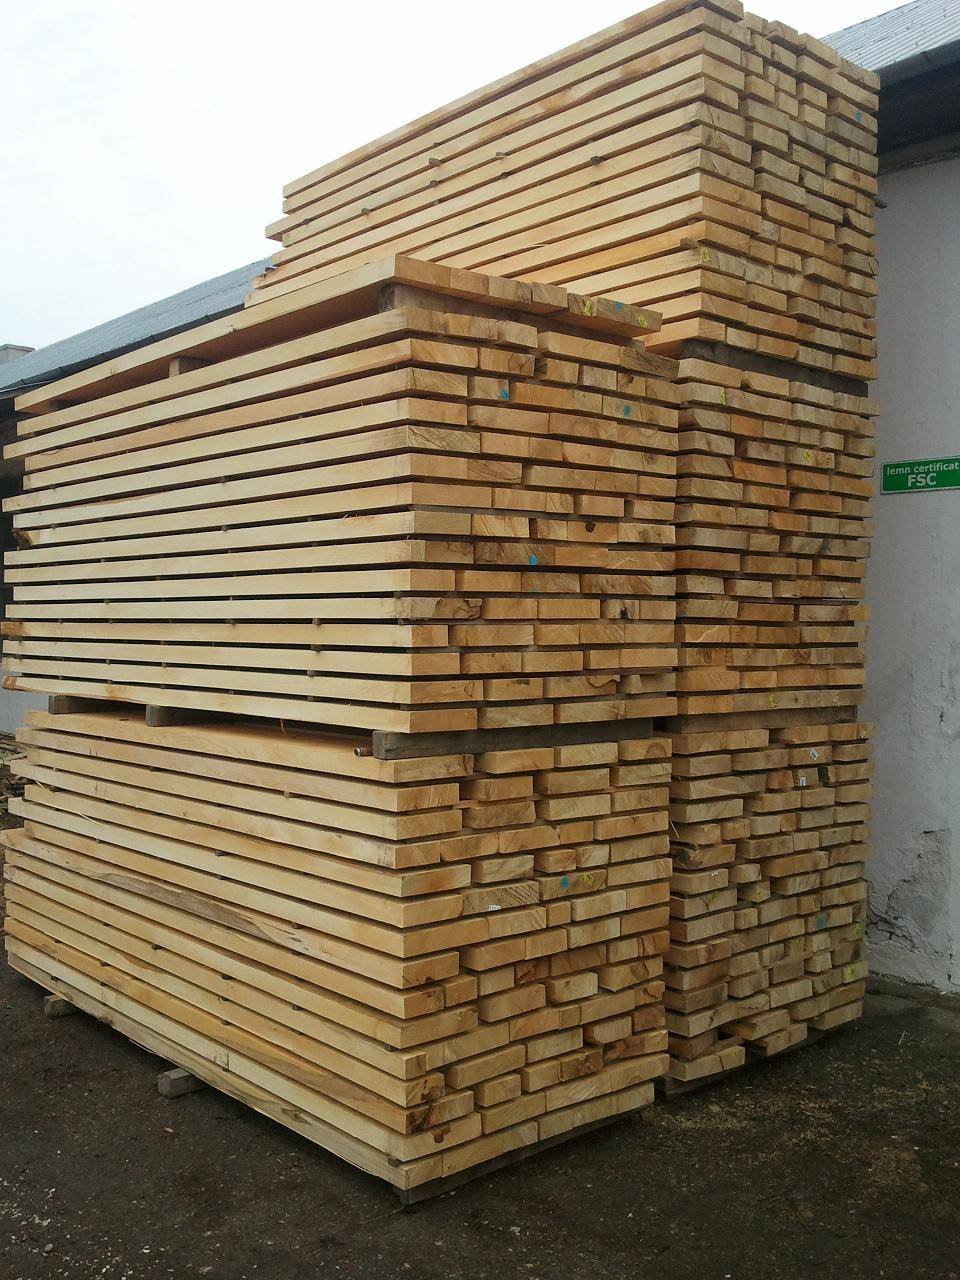 lime, ash, sycamore, cherry and spruce timber